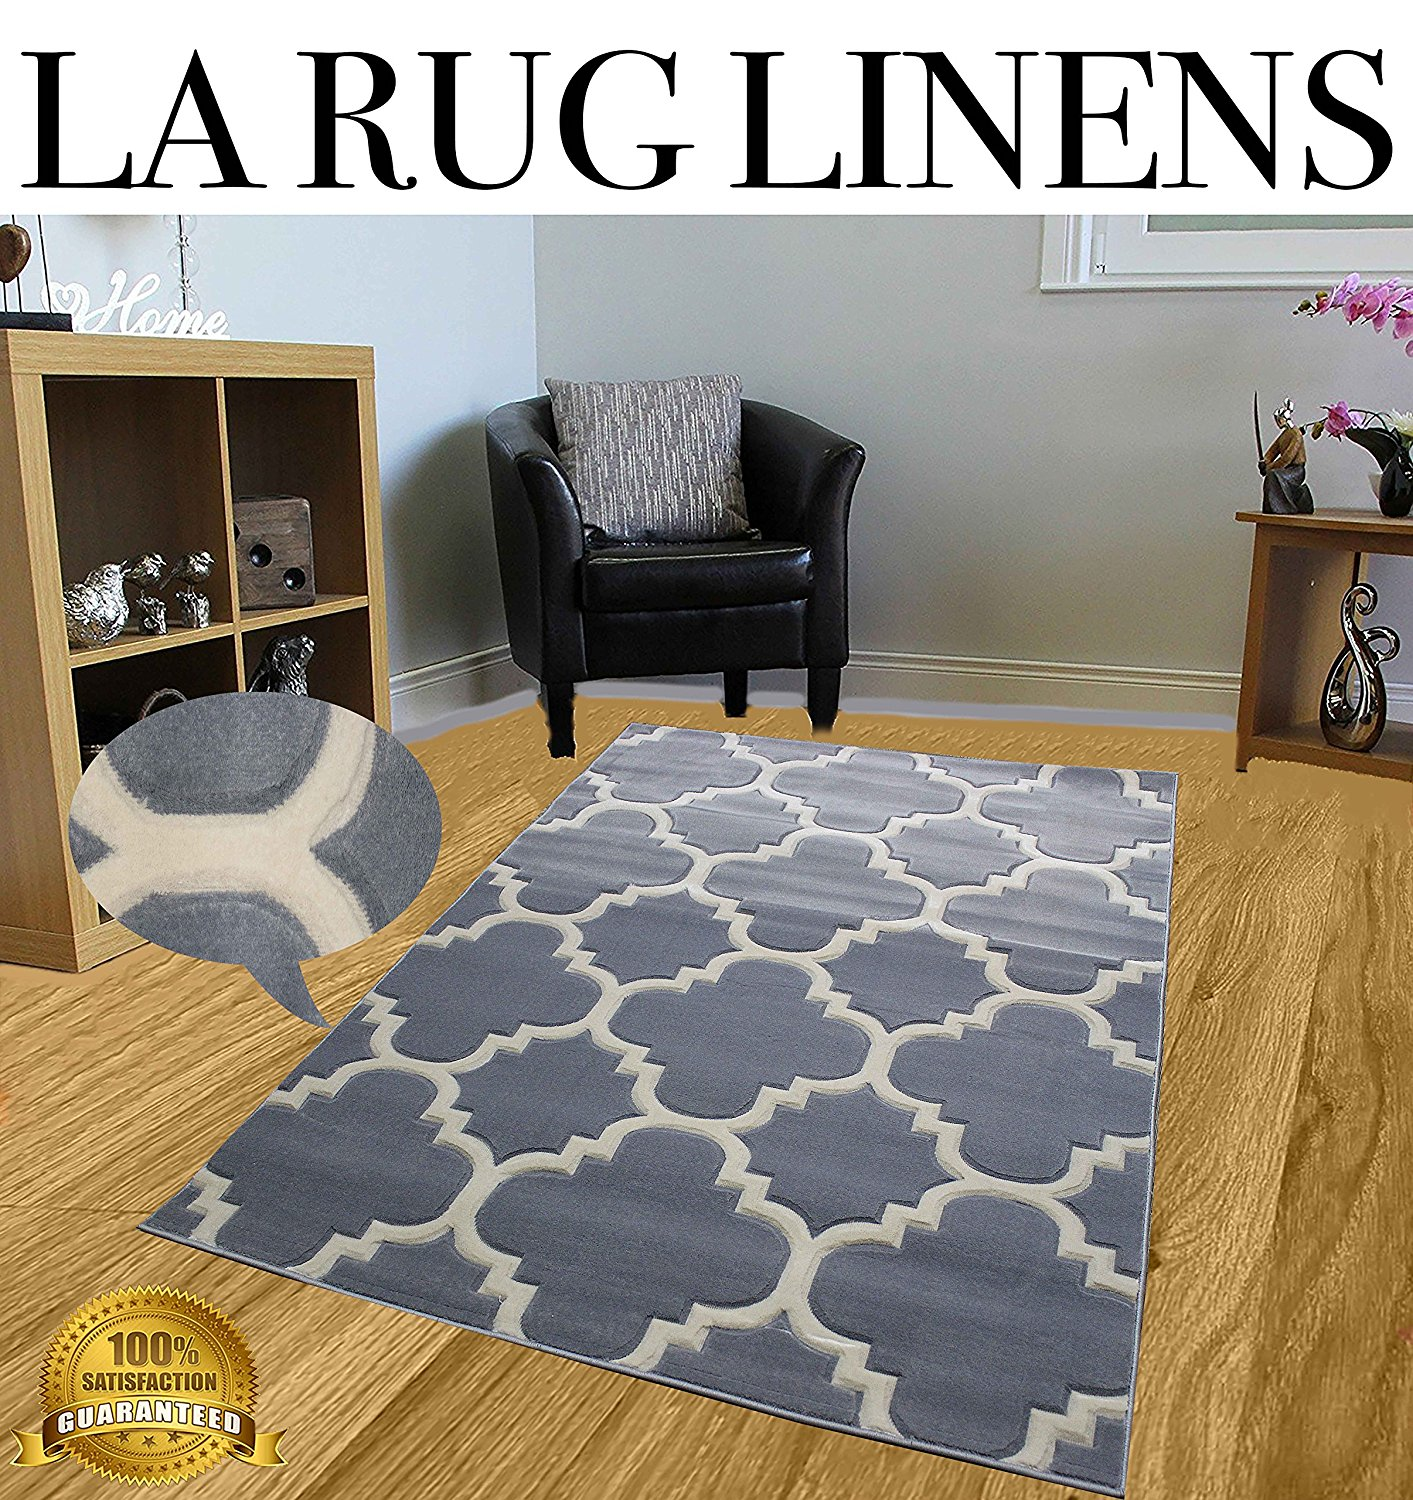 Buy La Rug Linens Huge Blowout Sale Brand New Excellent